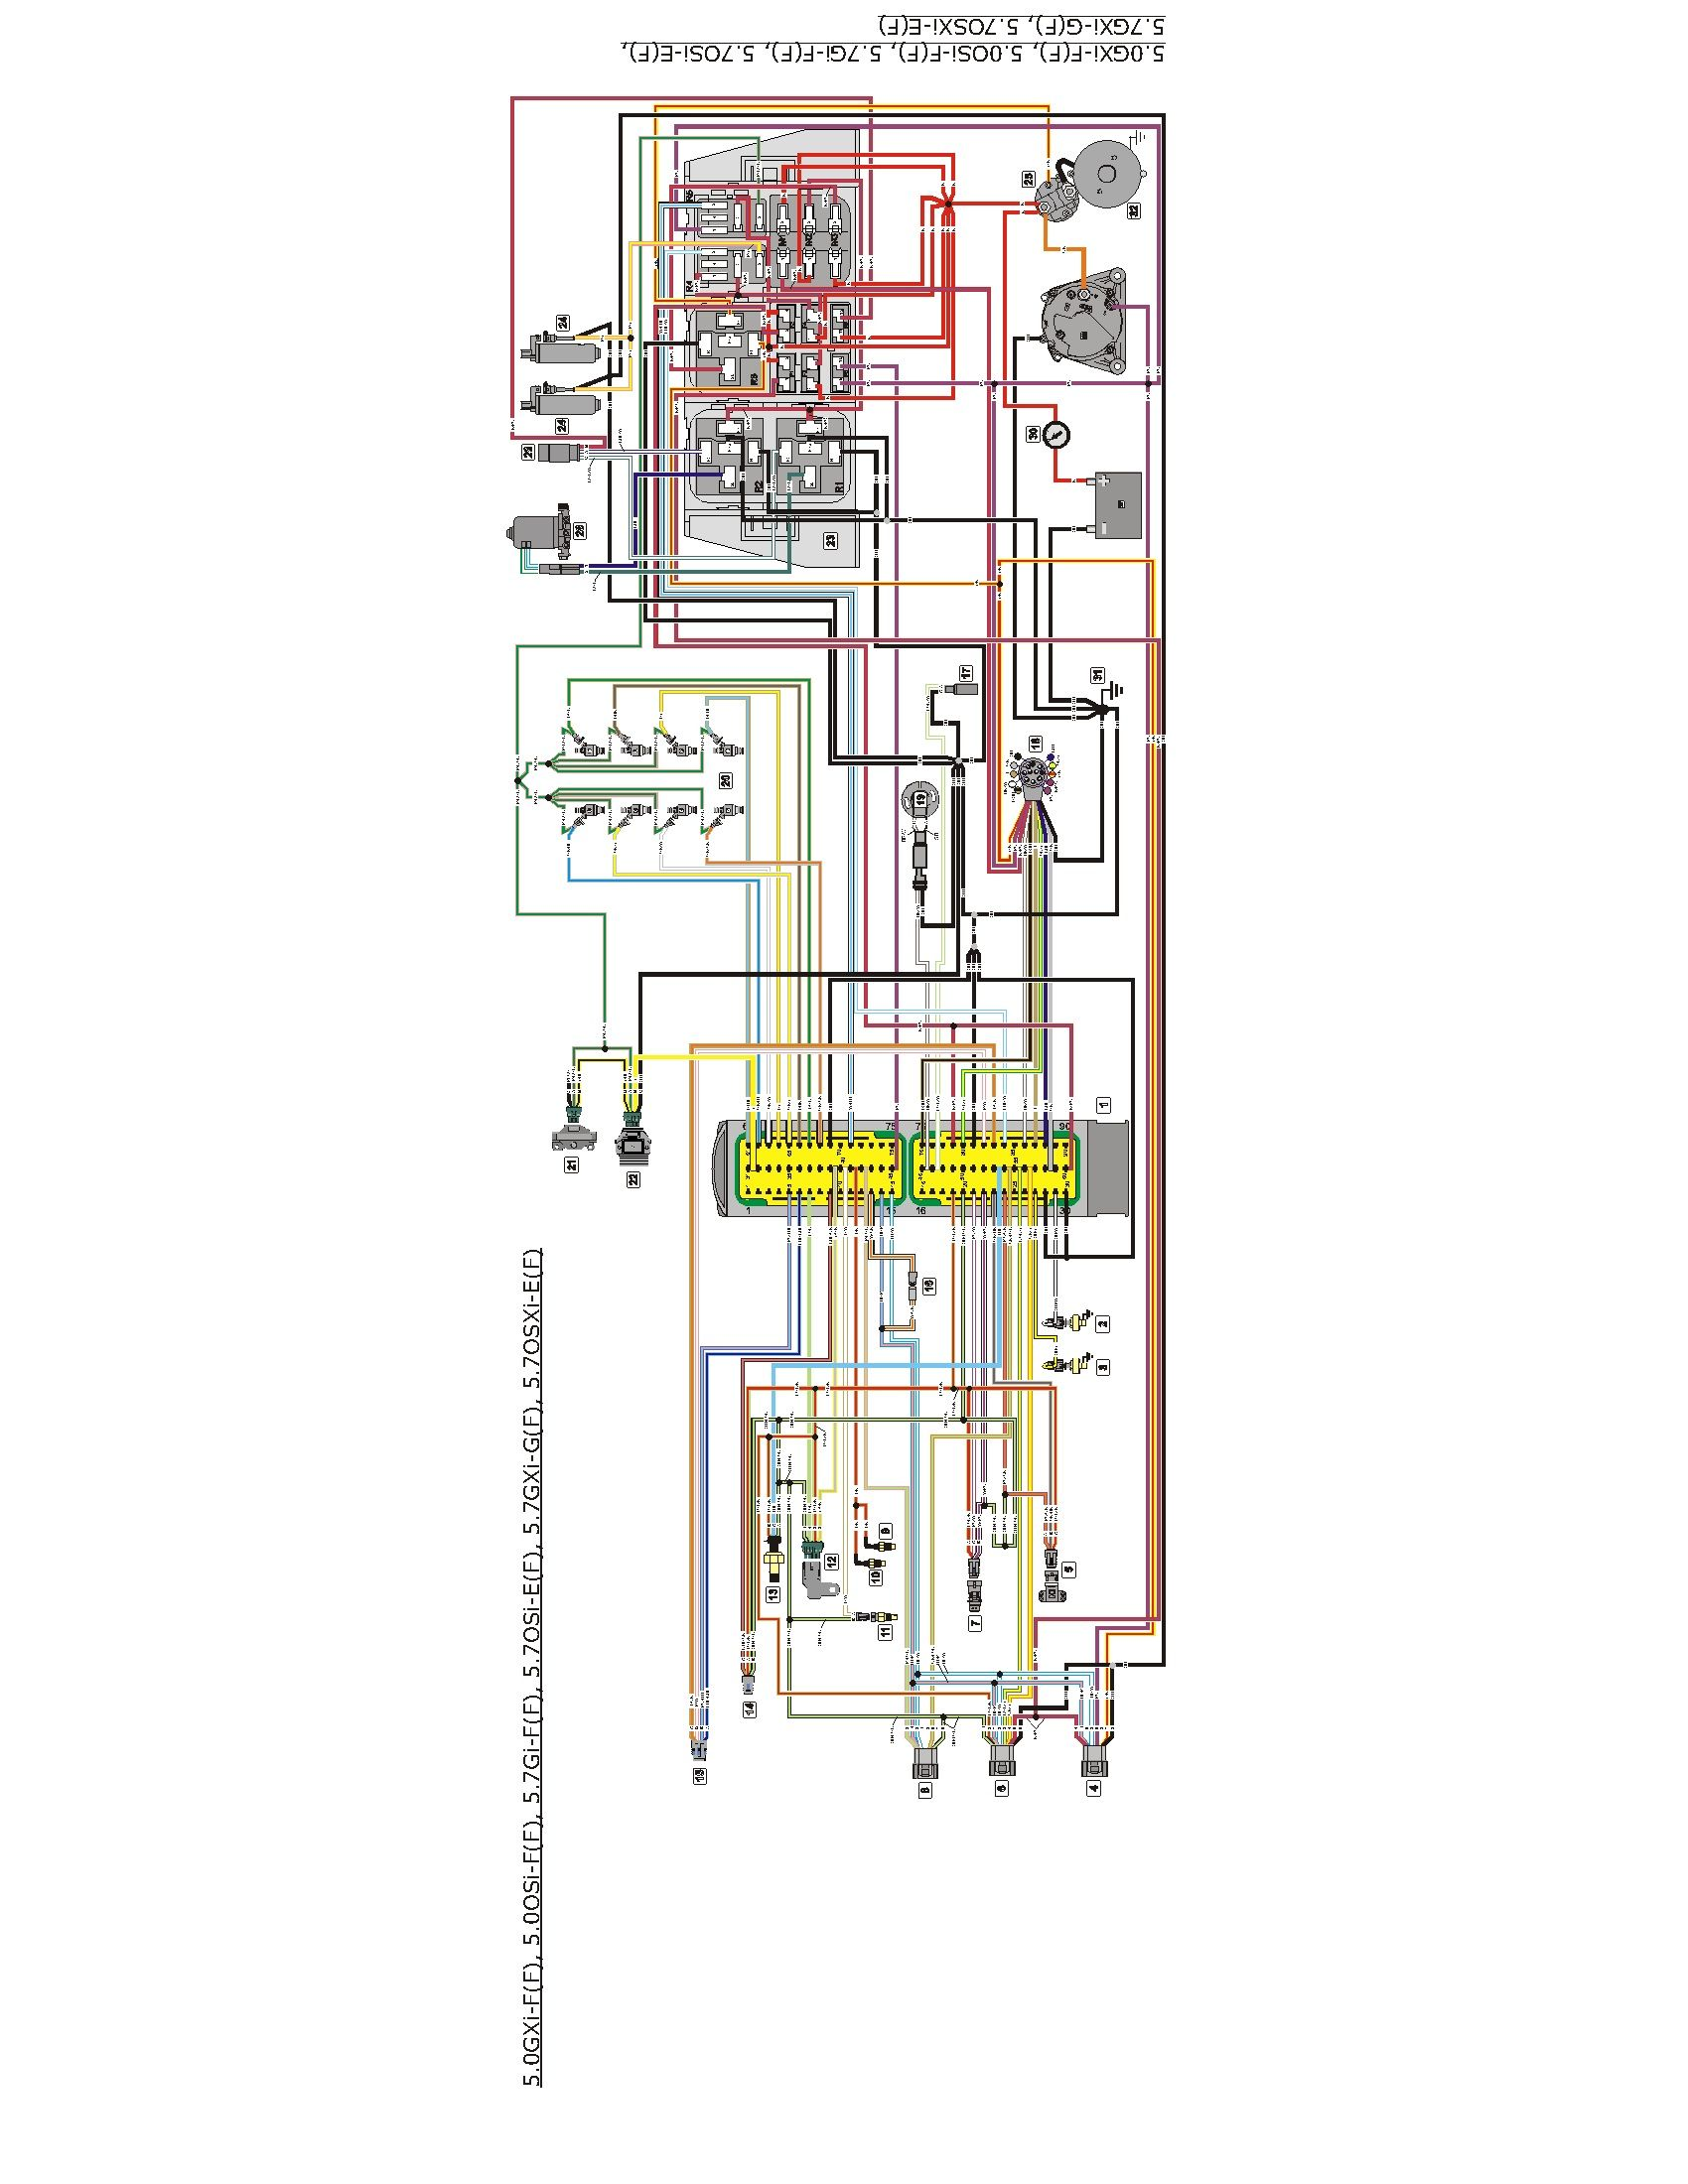 volvo penta 5 7 engine wiring diagram [ 1700 x 2200 Pixel ]